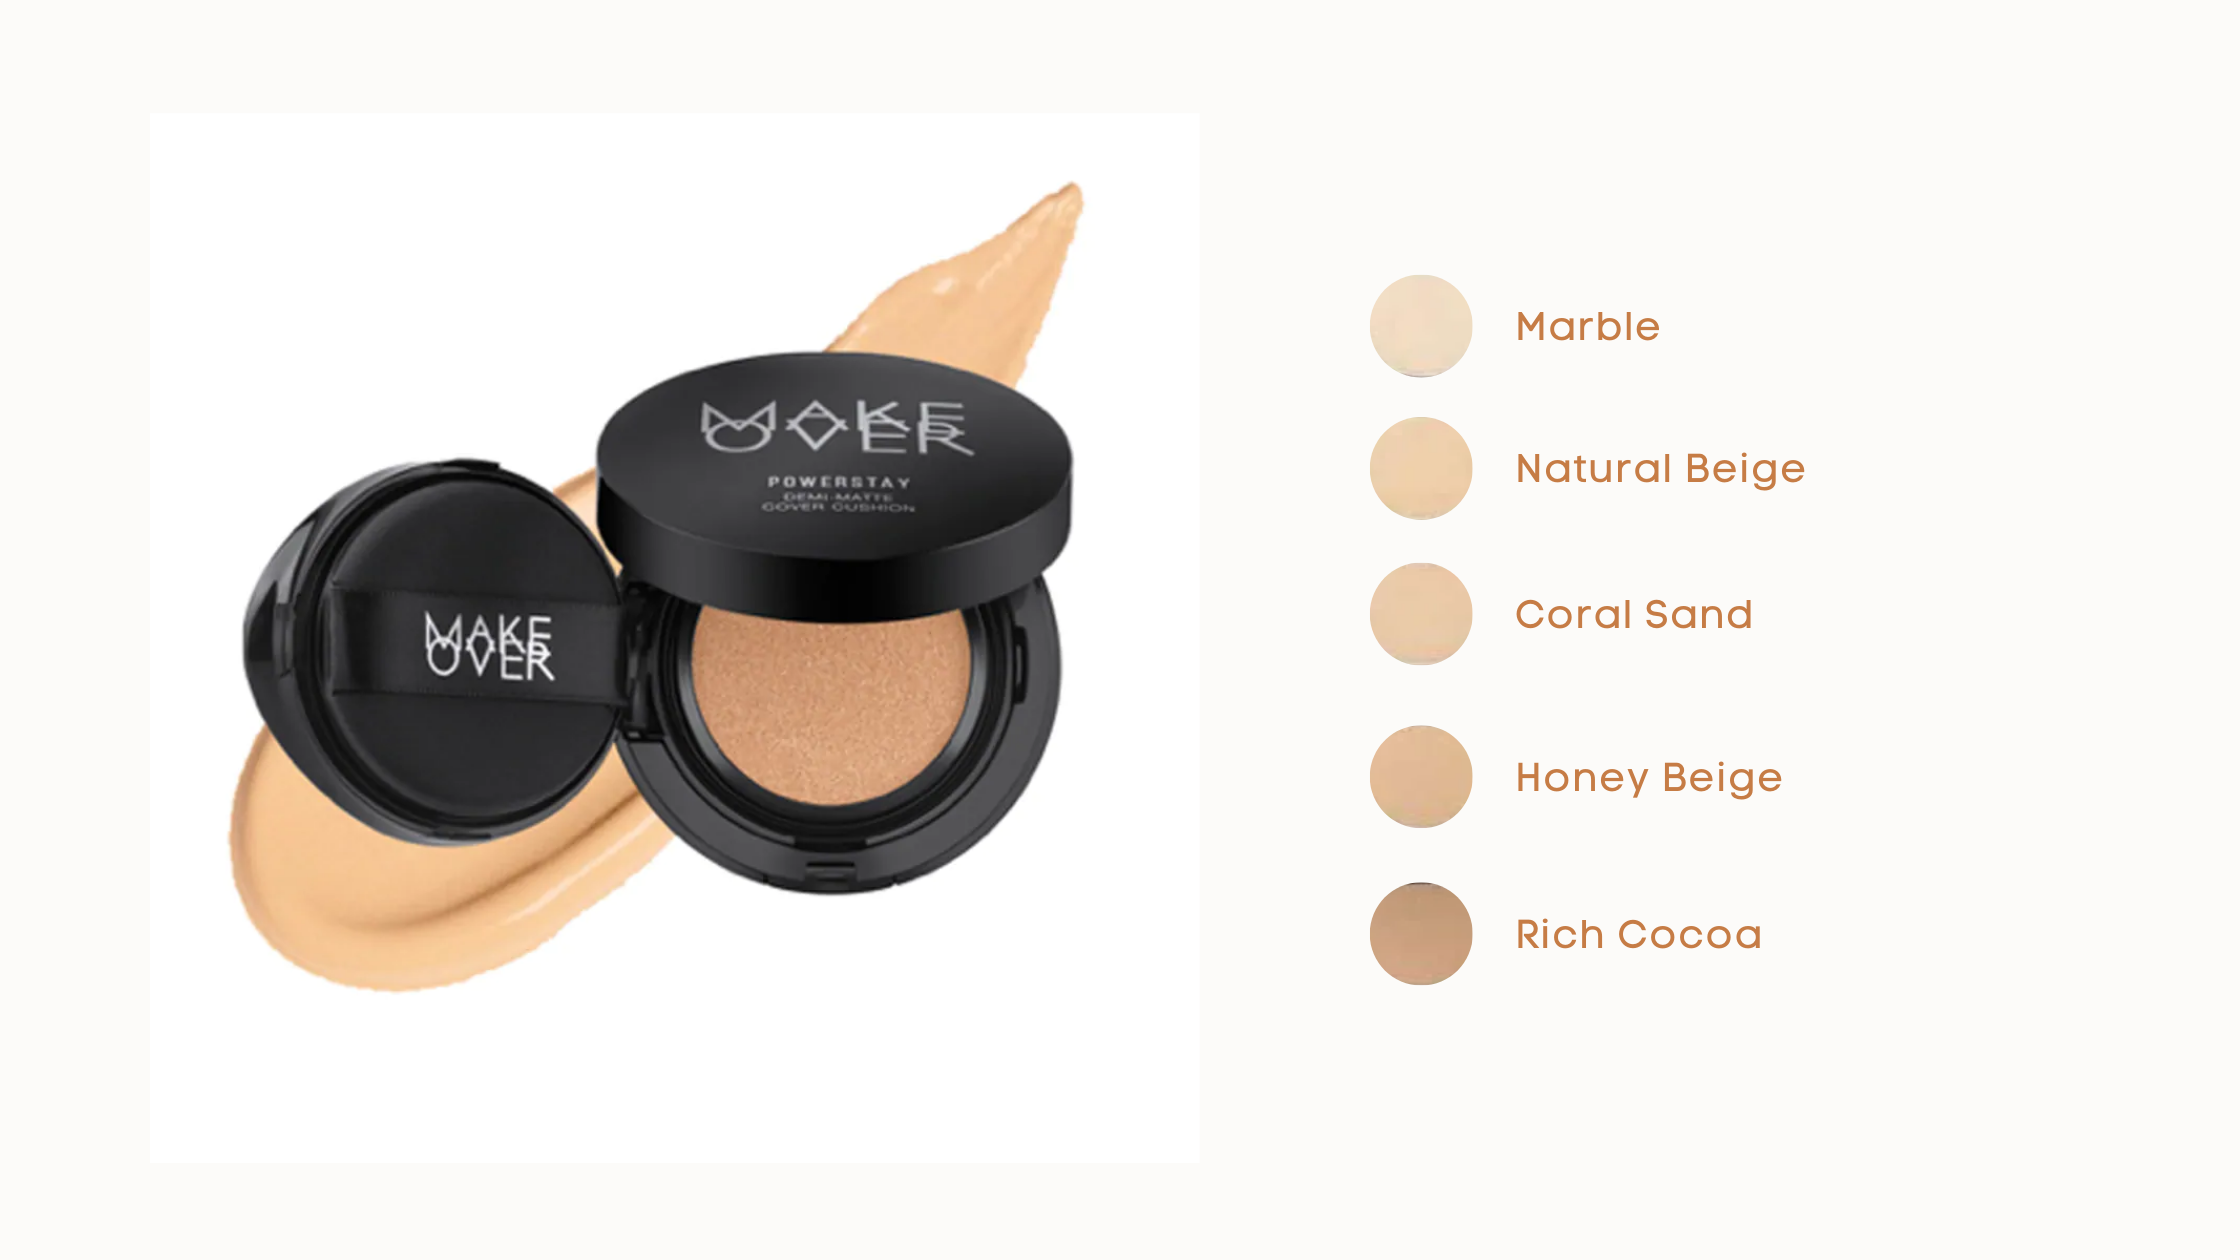 Make-over-powerstay-demi-matte-cover-cushion